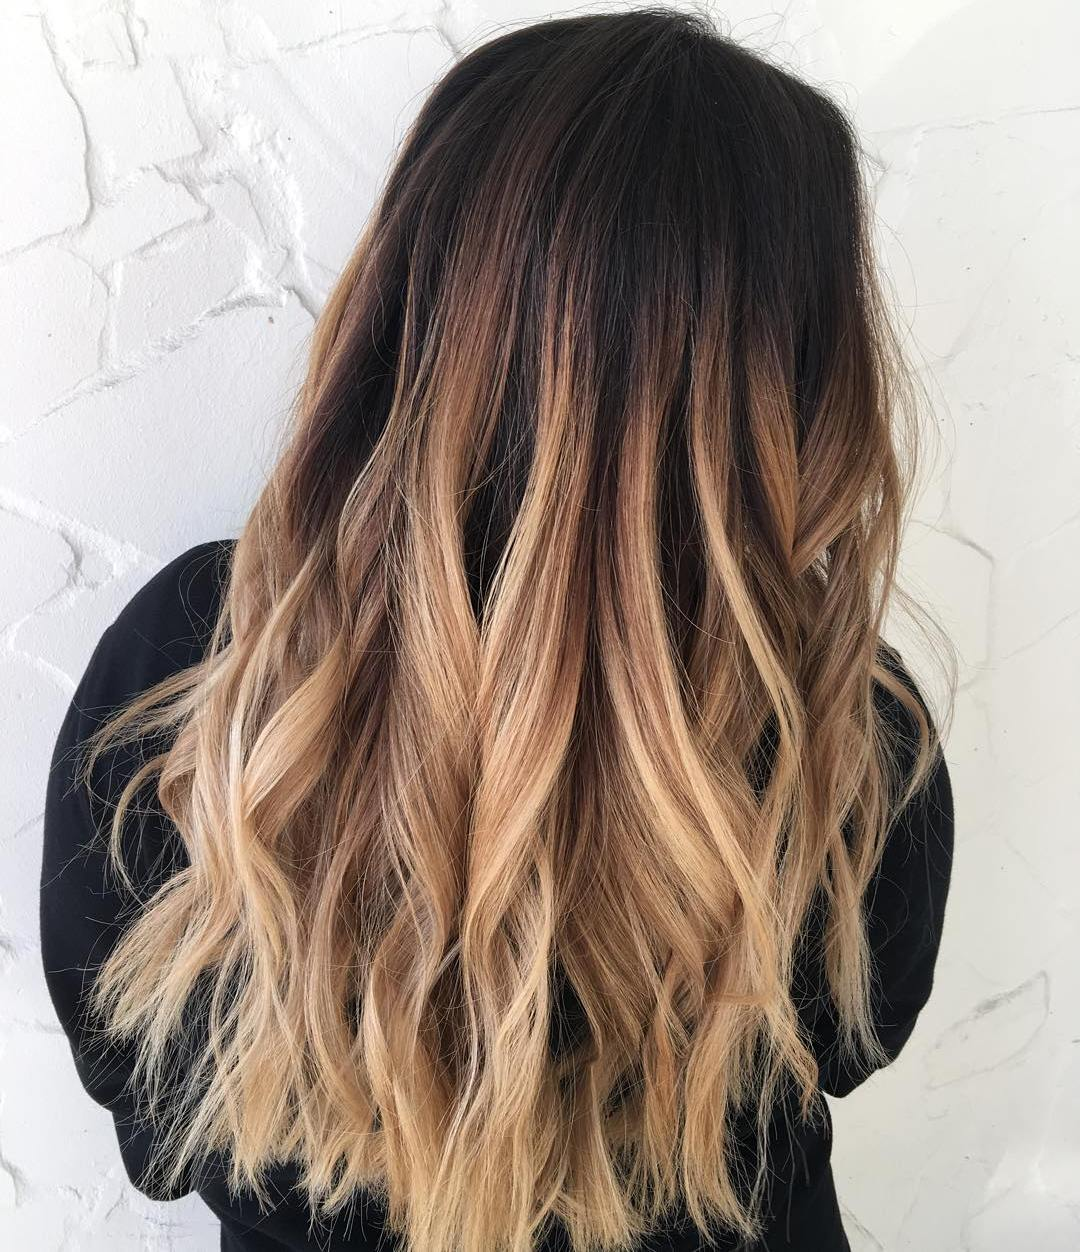 Miraculous 60 Best Ombre Hair Color Ideas For Blond Brown Red And Black Hair Hairstyles For Women Draintrainus